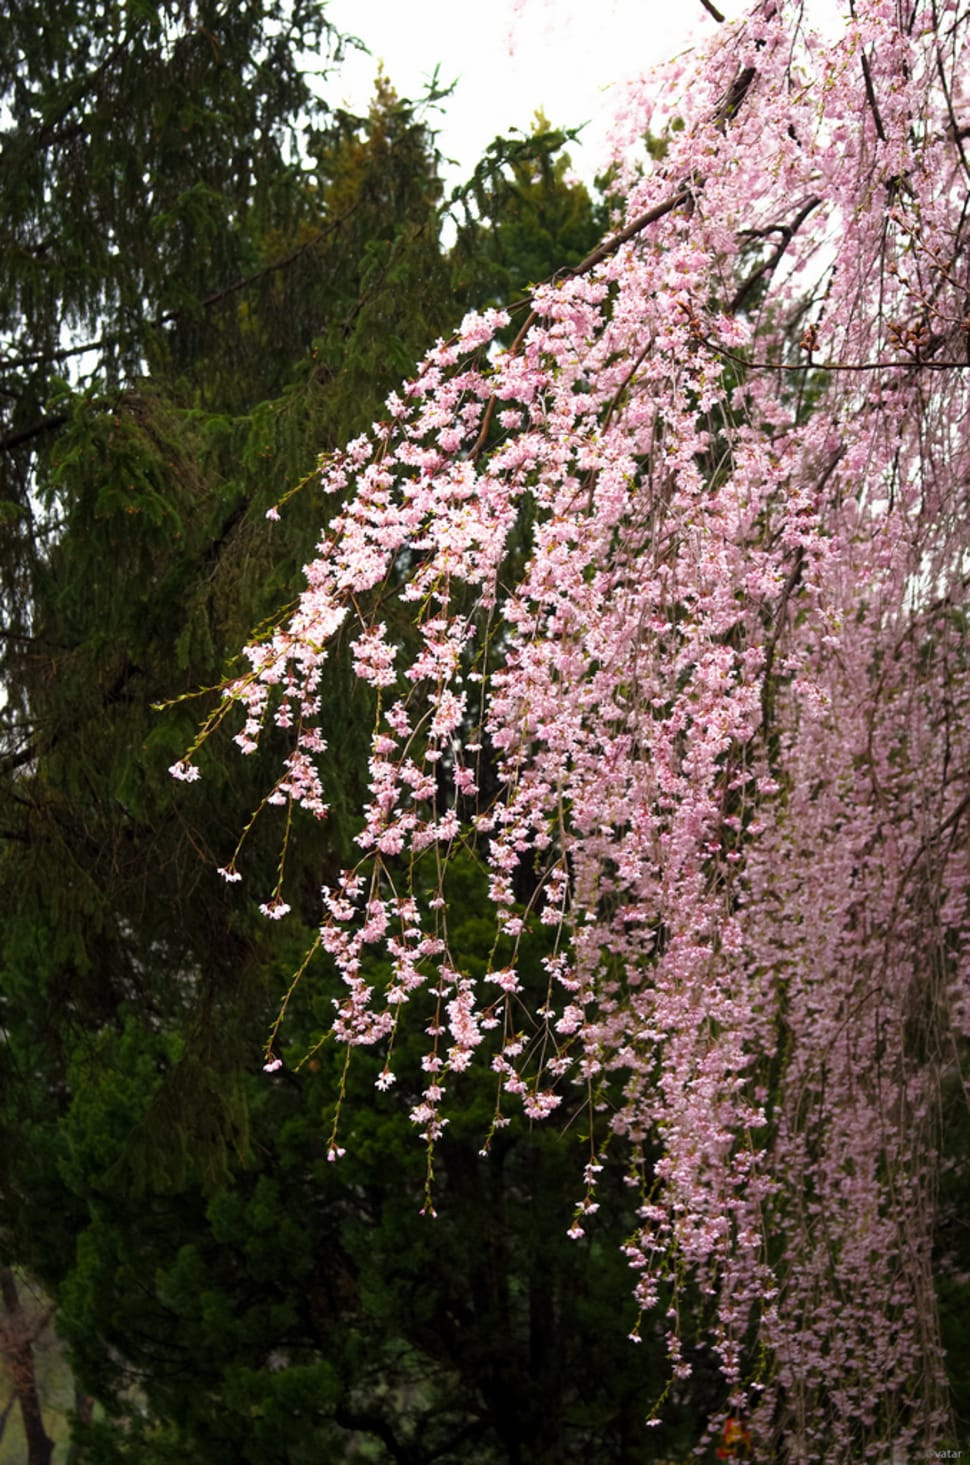 Weeping Cherry Blossoms in Seoul - Best Season